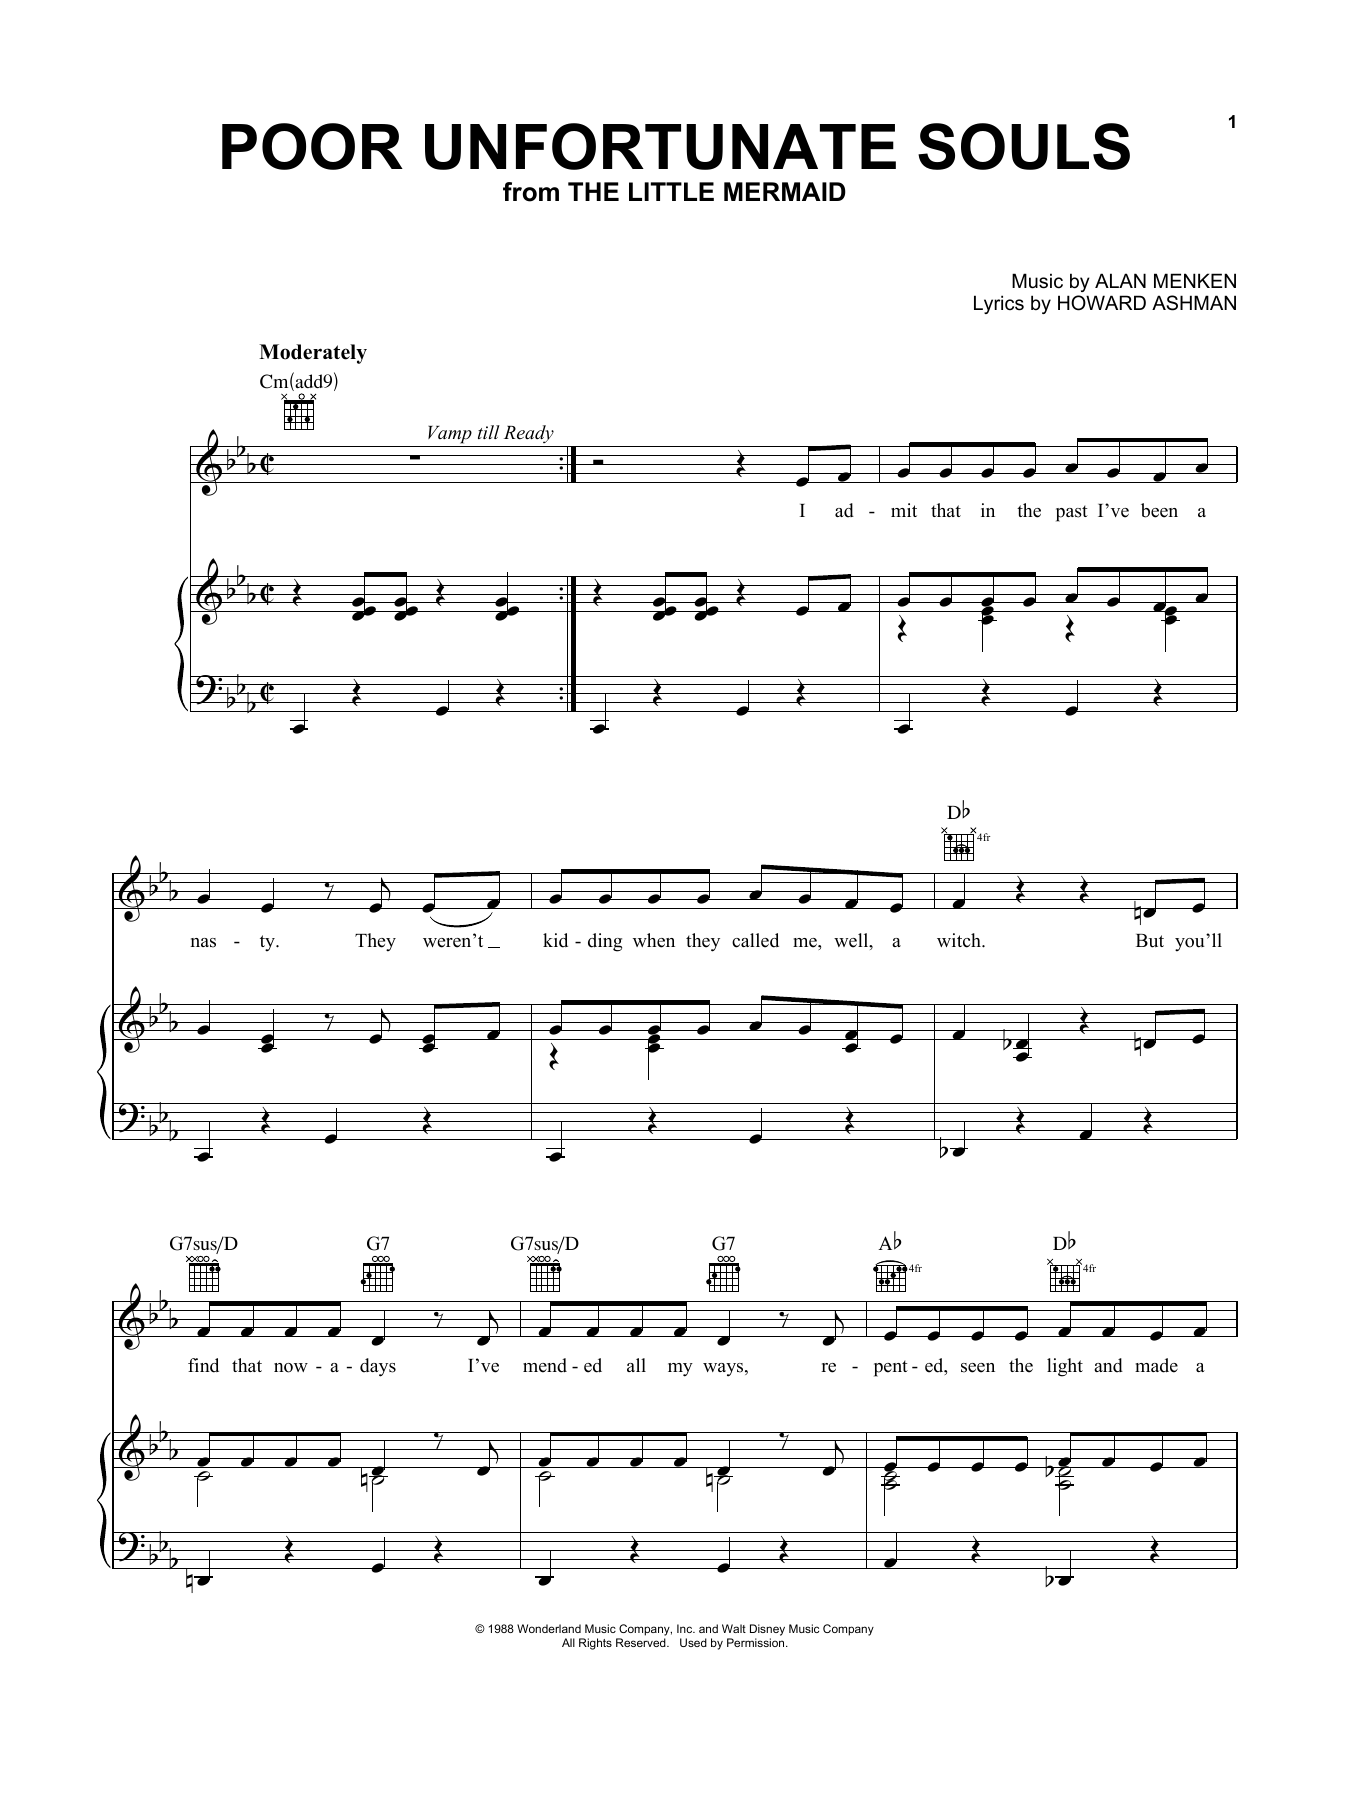 Poor Unfortunate Souls from The Little Mermaid Sheet Music   Alan Menken    Piano, Vocal & Guitar Right Hand Melody